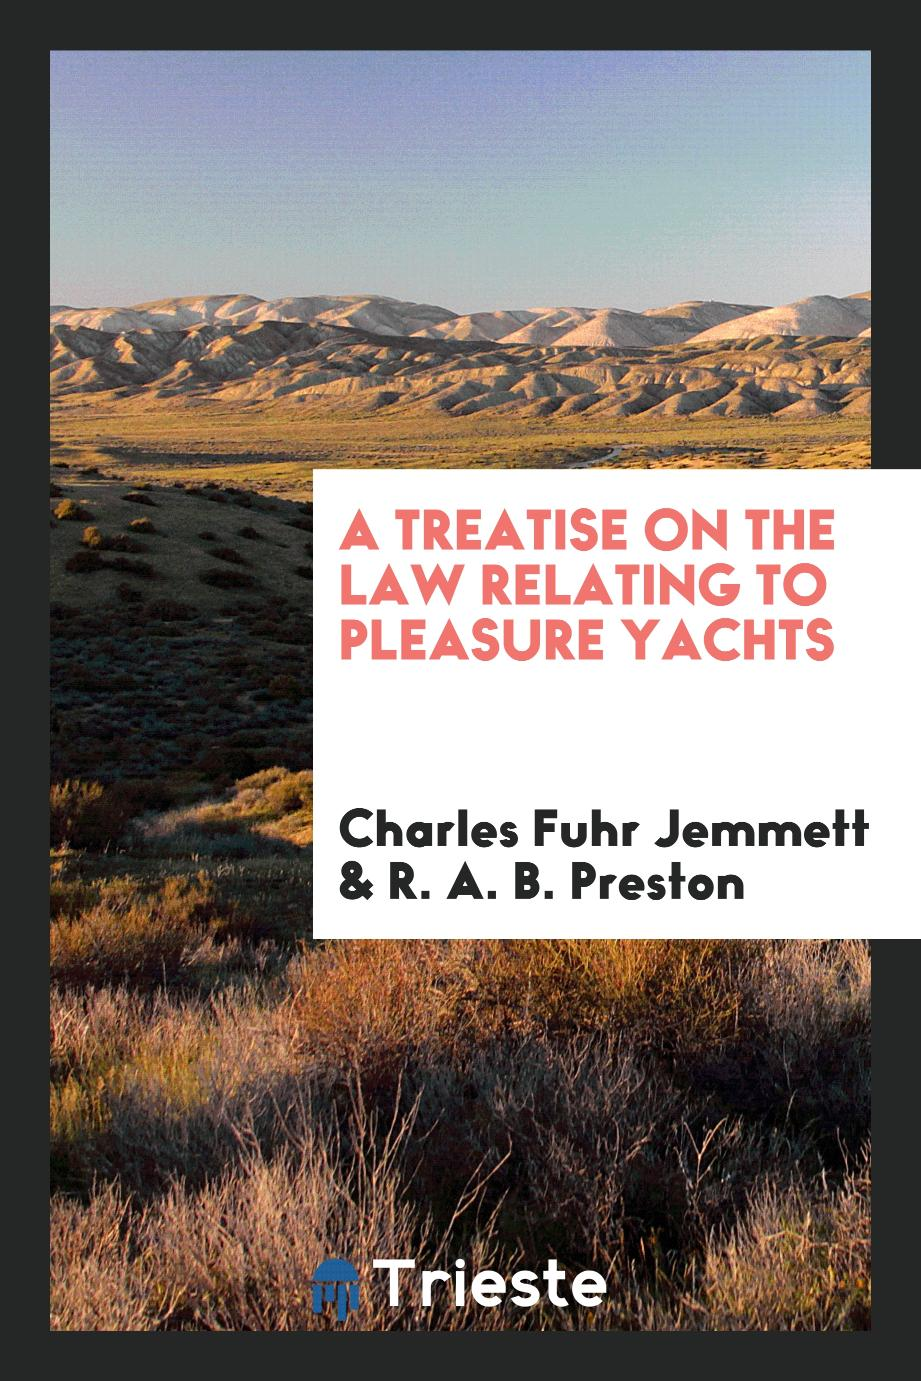 A Treatise on the Law Relating to Pleasure Yachts